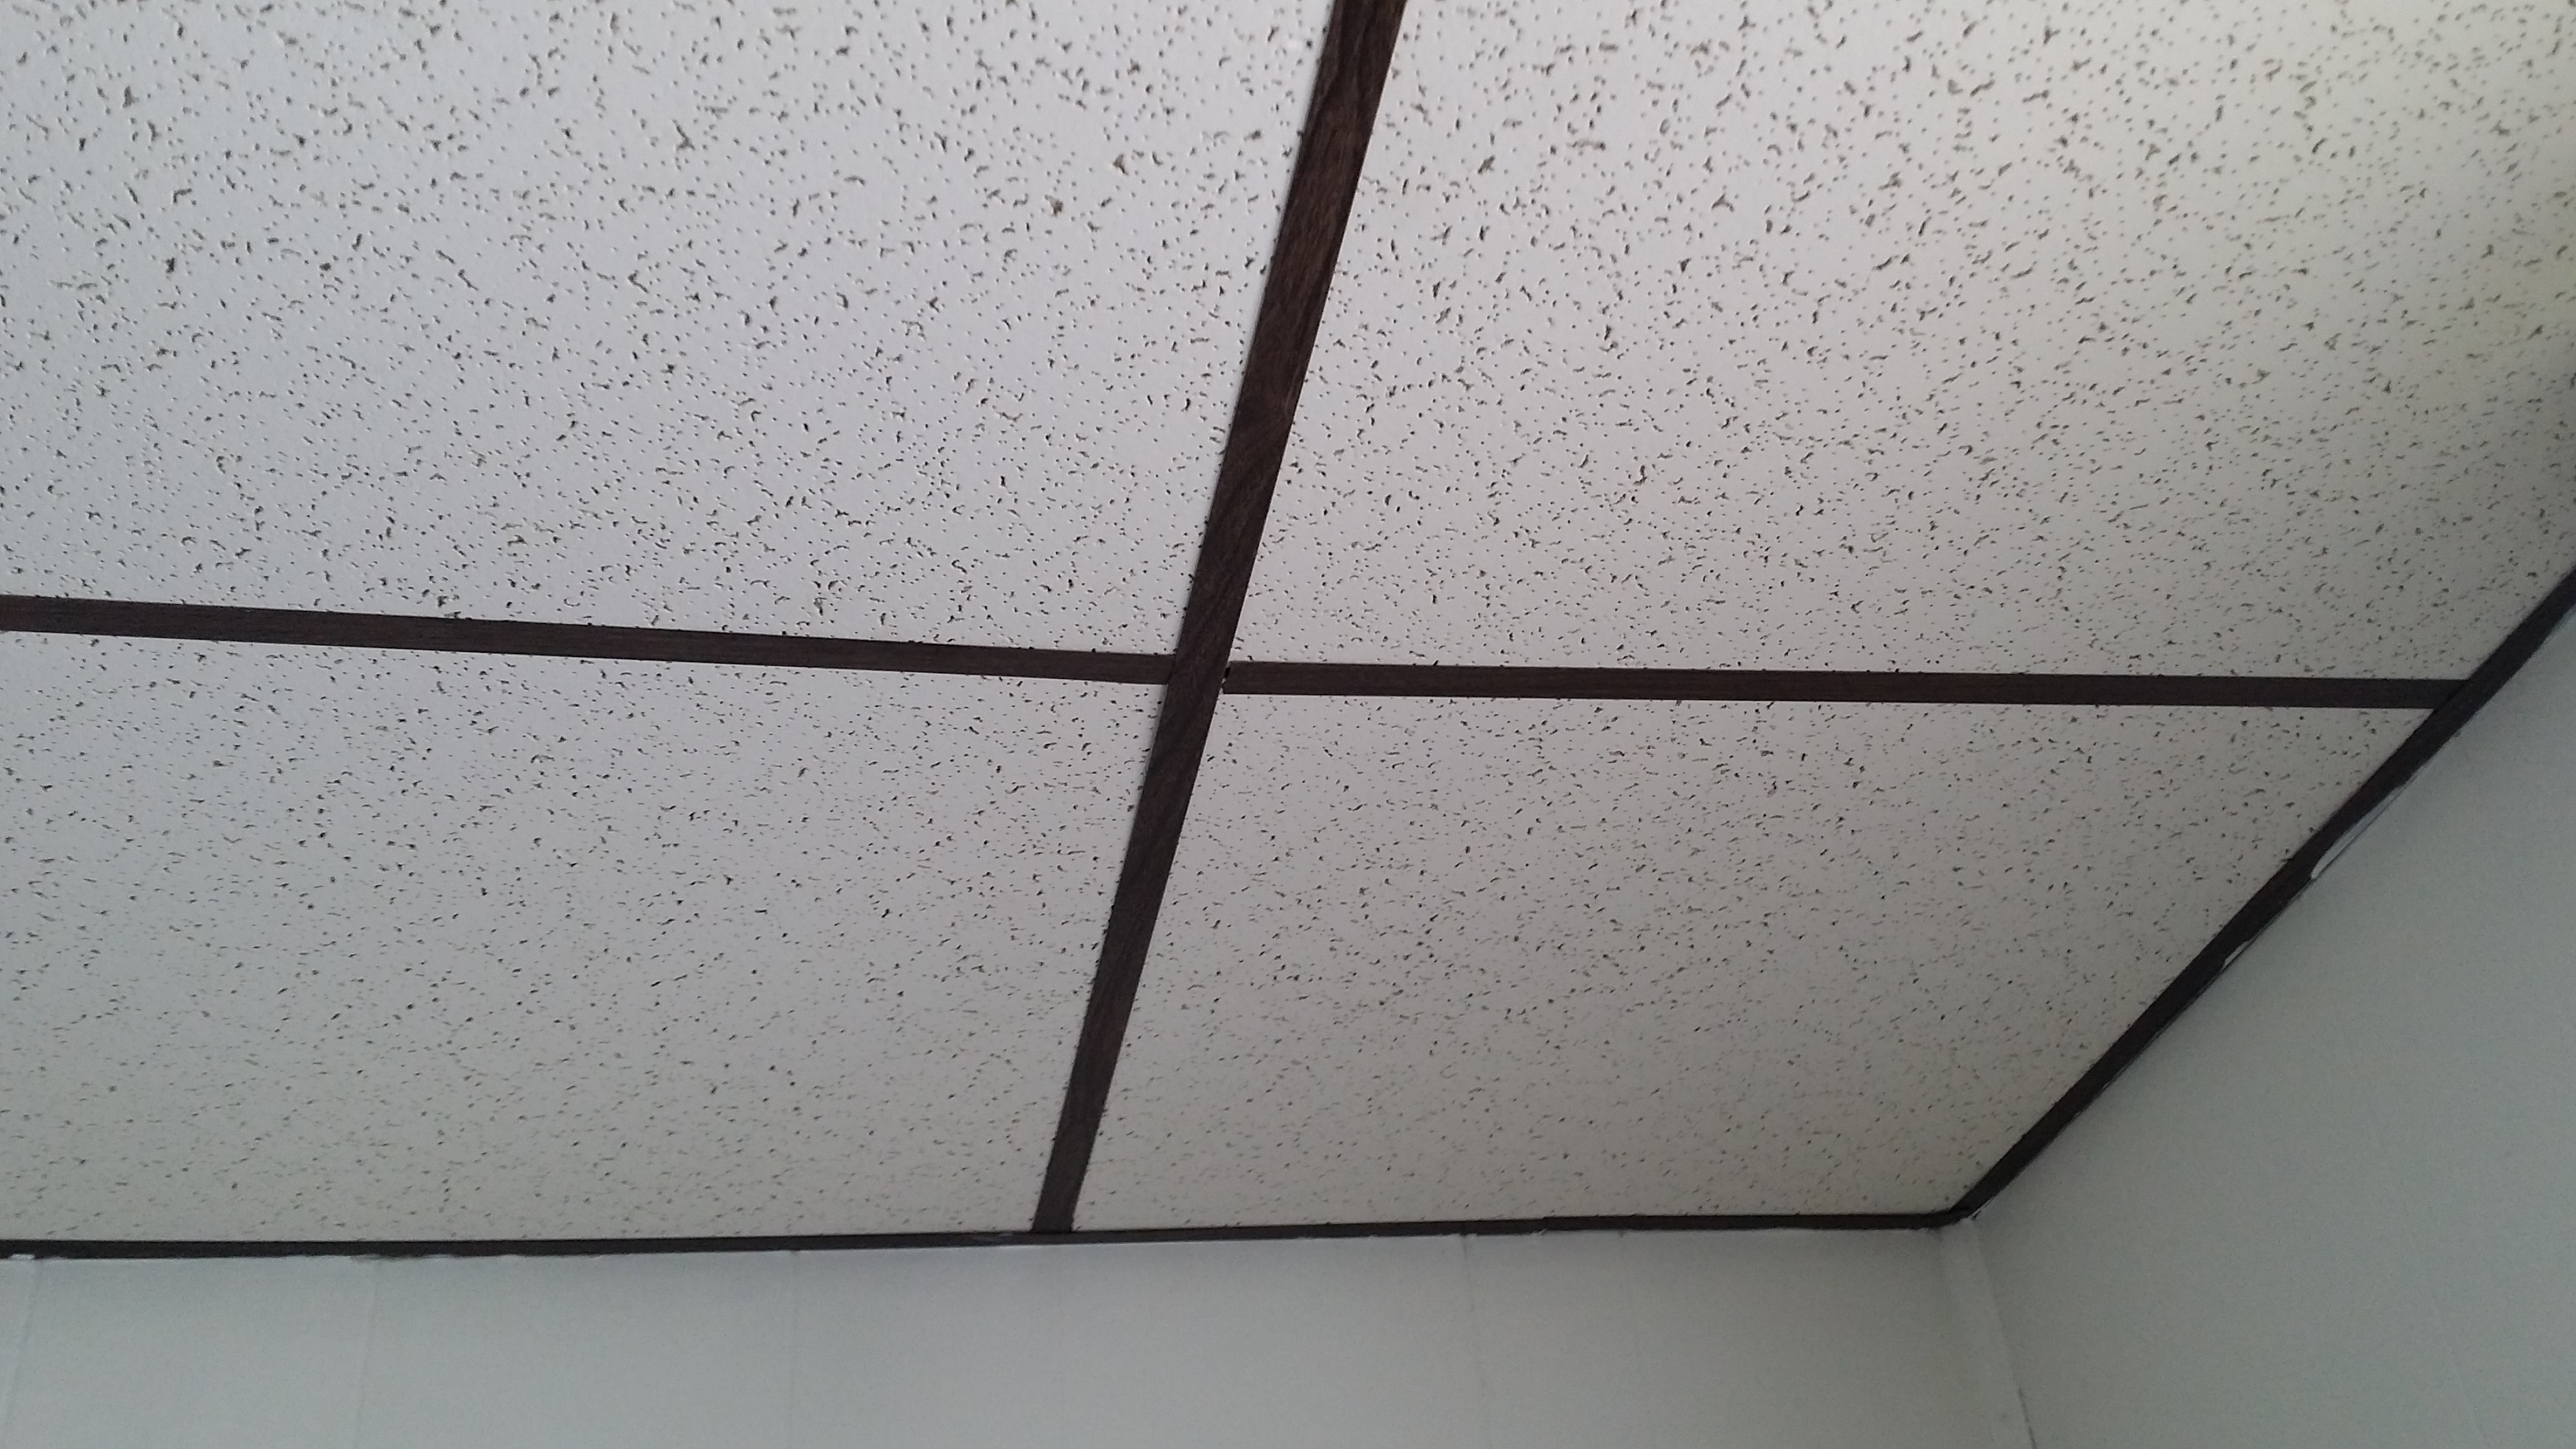 for the mold sensitized individual - drop ceilings may cover old water damage and mold